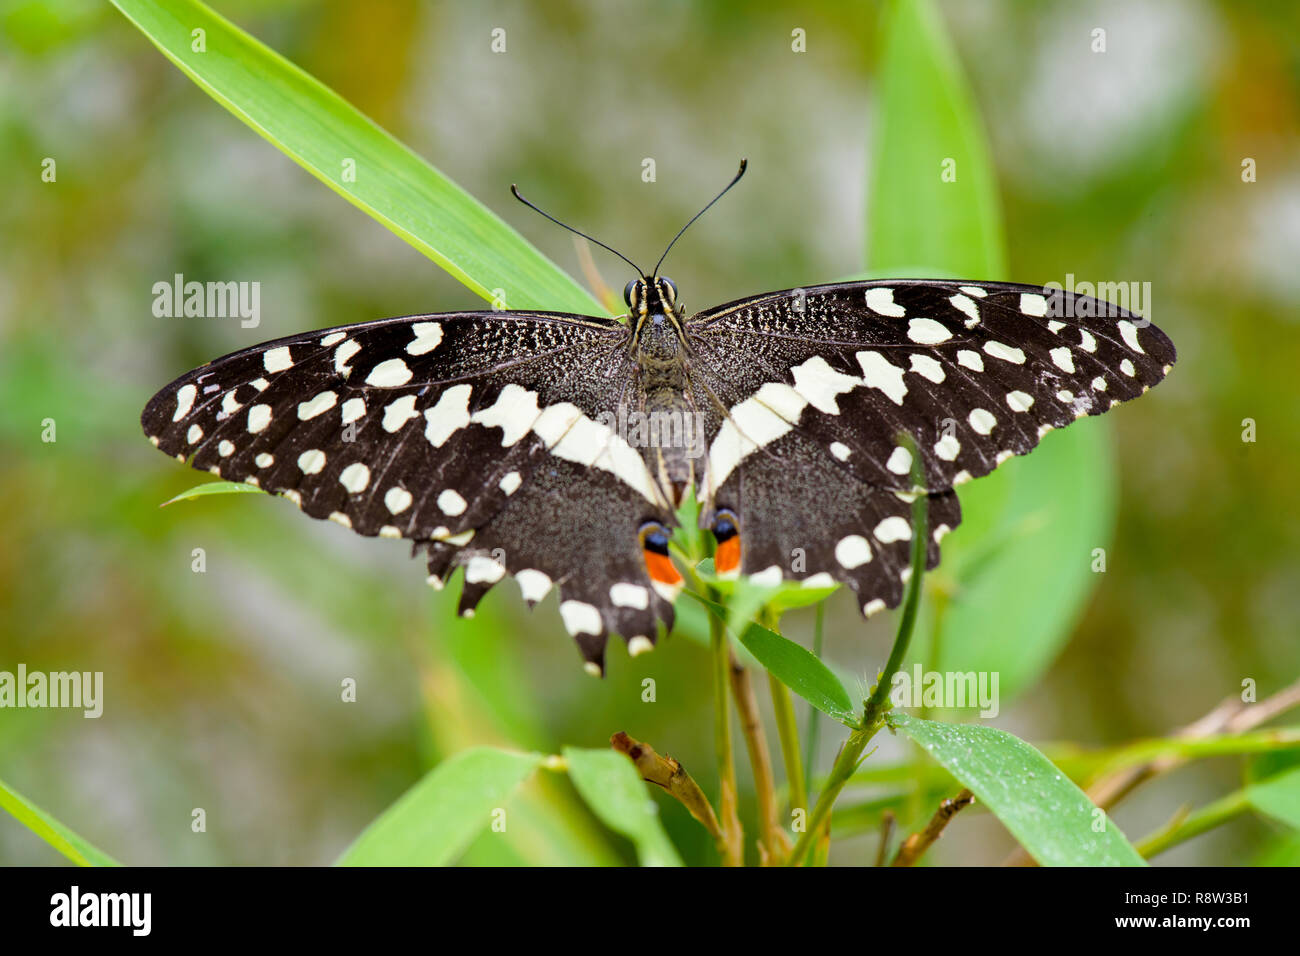 Brush-footed butterfly (Limenitis) on leaf - Stock Image